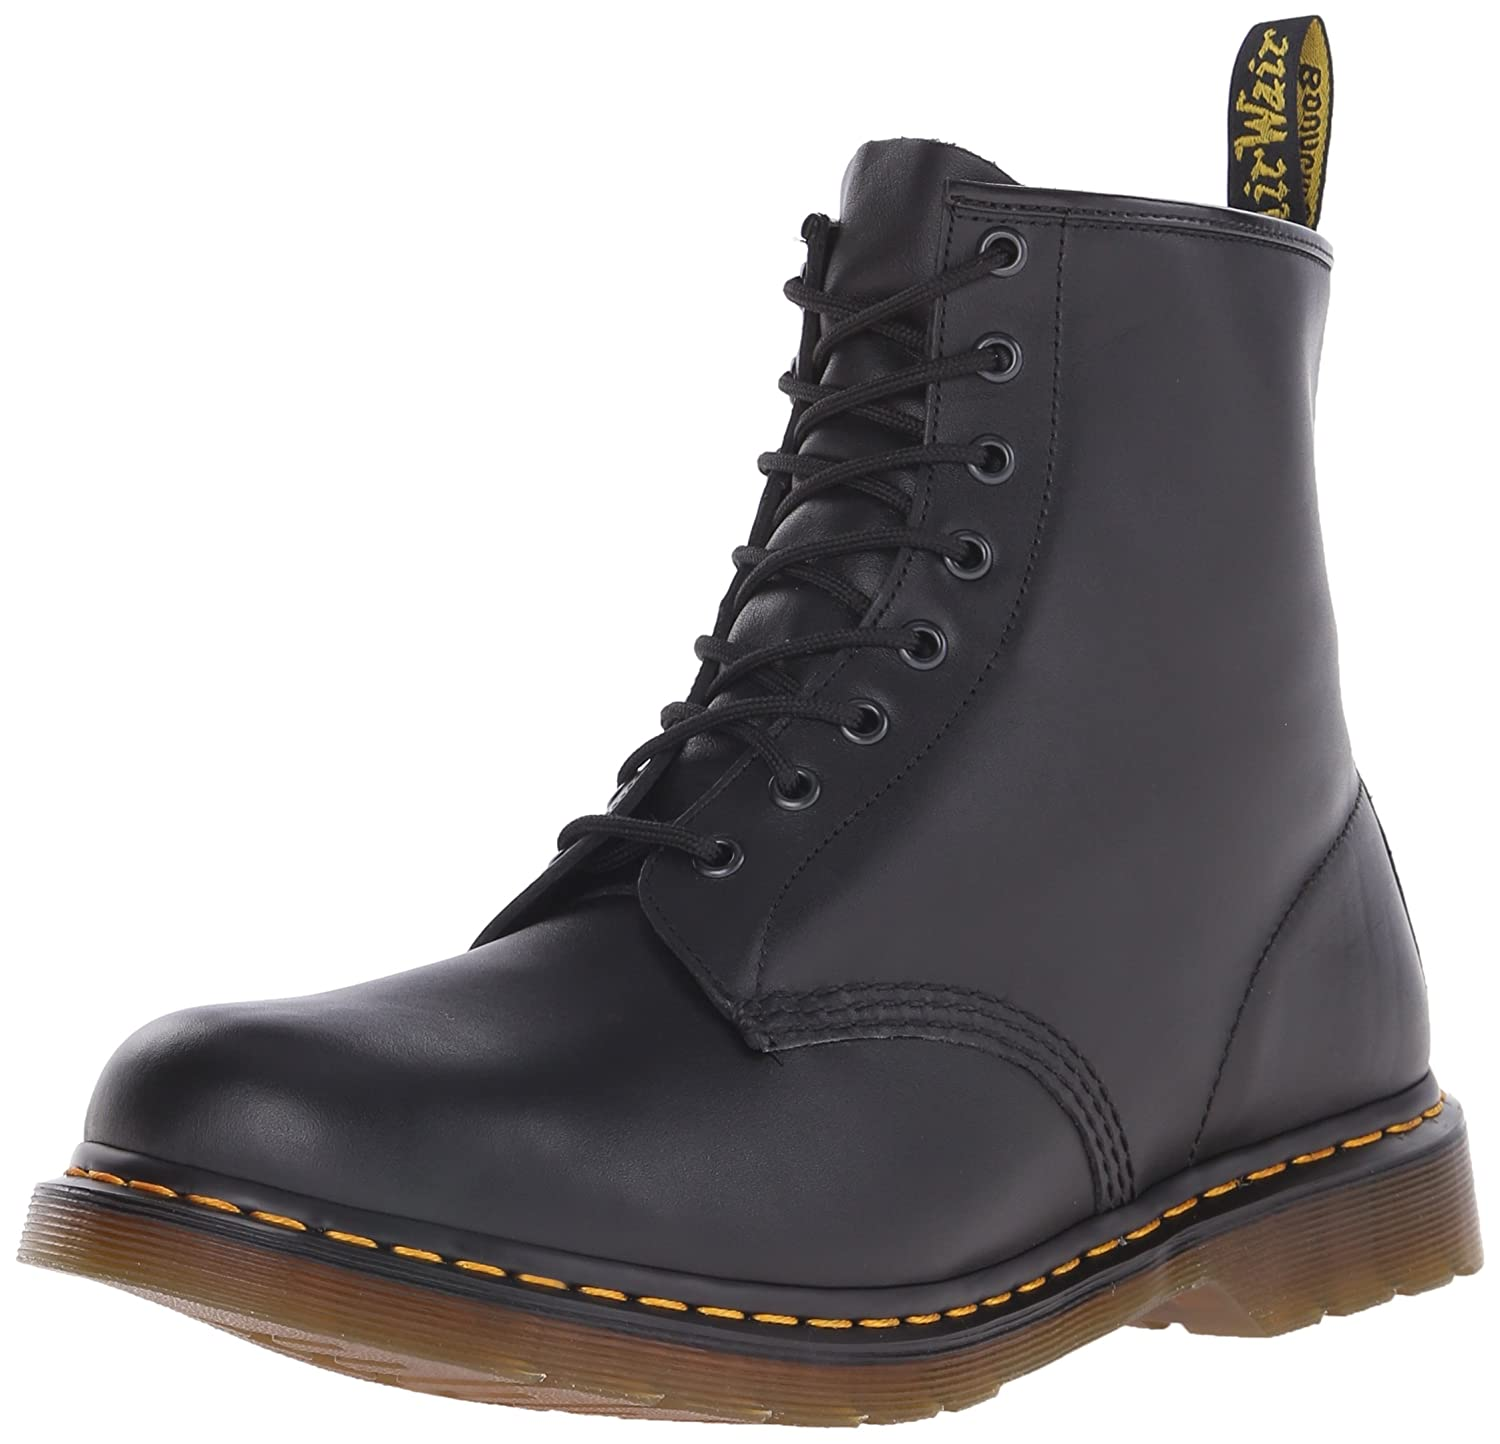 Black Nappa Leather Dr. Martens Men's 1460 Combat Boot